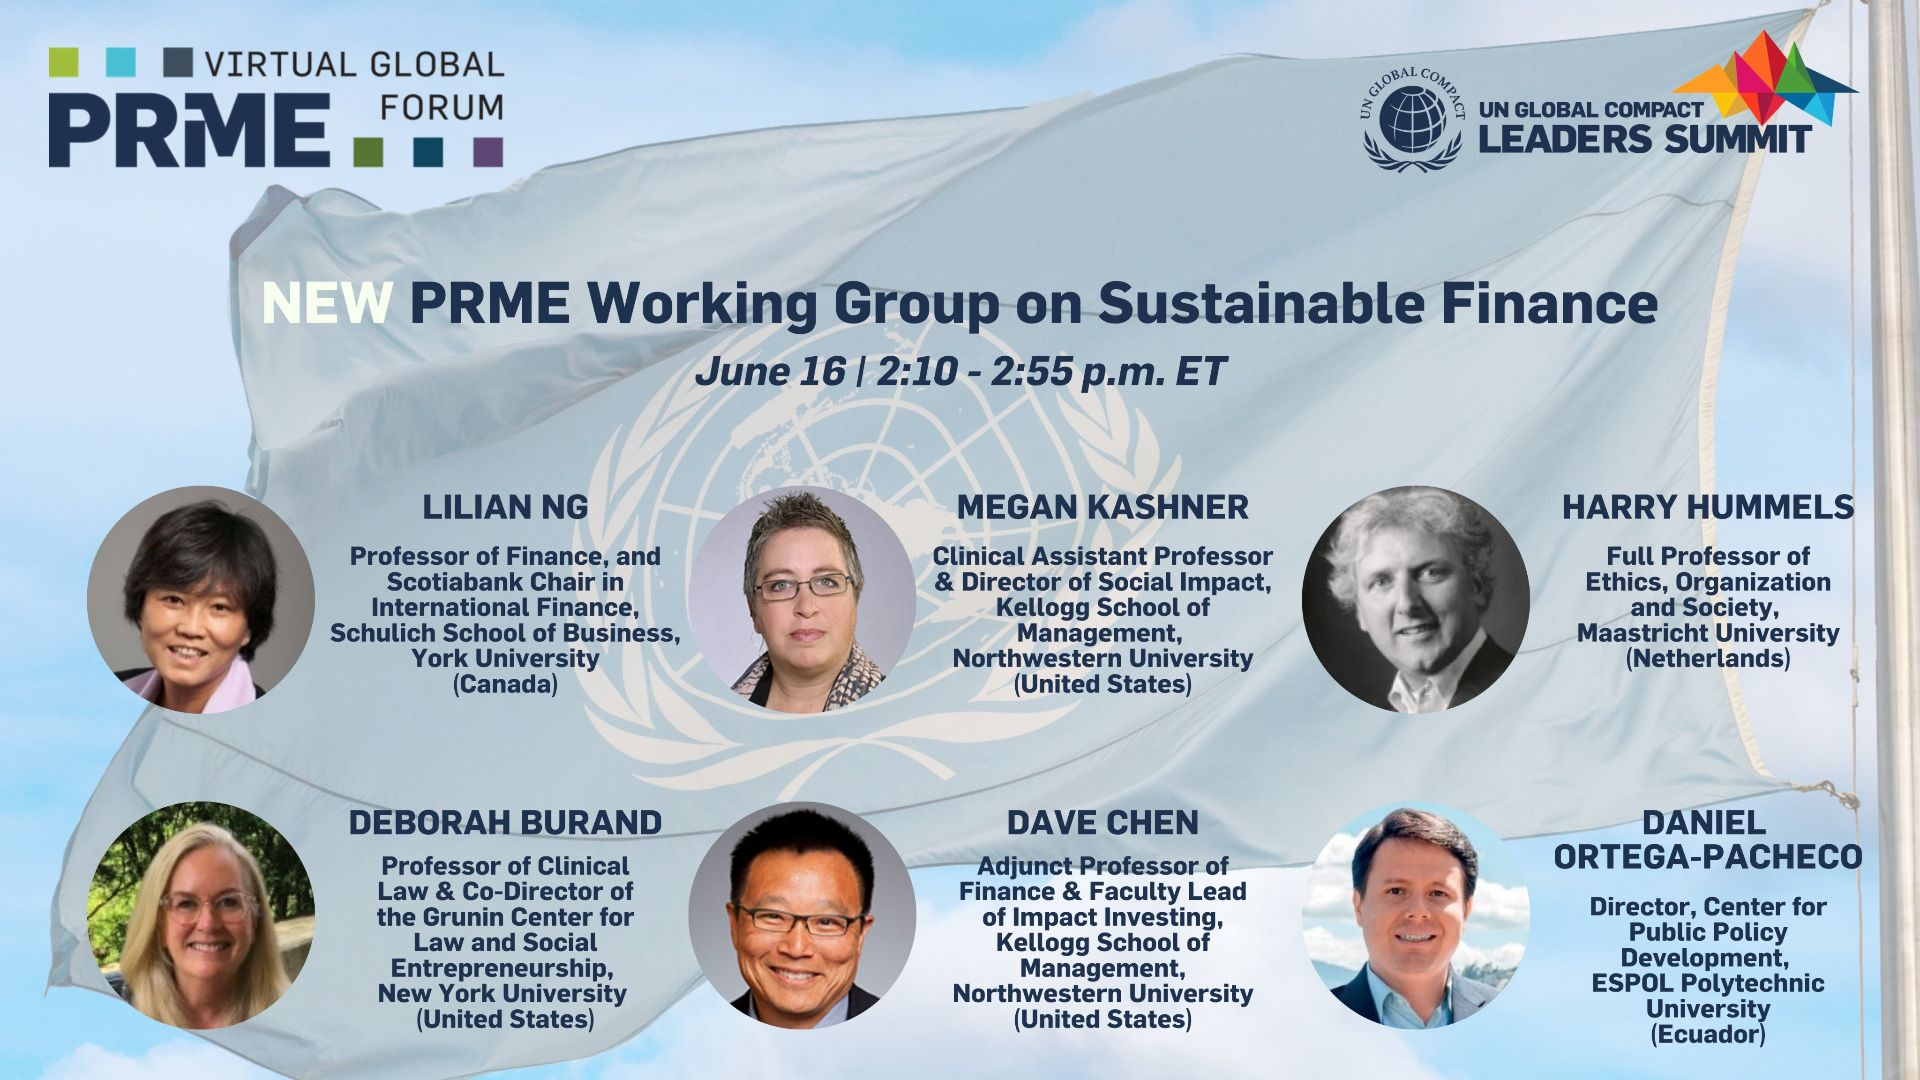 Image of UN Global Compact Virtual Leaders Summit session flyer